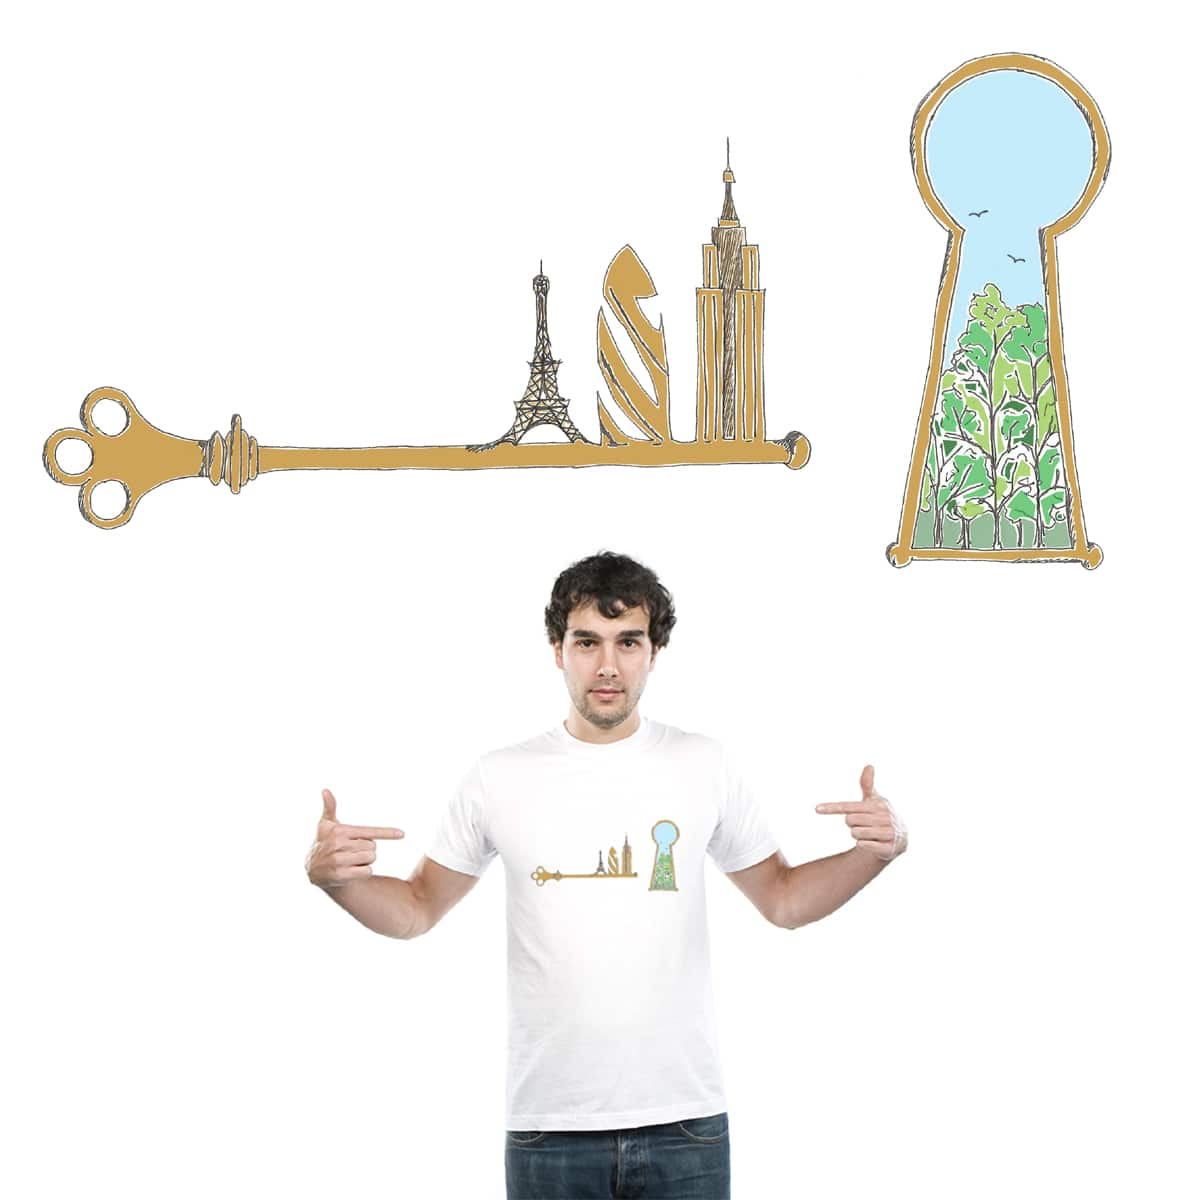 Key to the Cities by Planeto Janeto on Threadless